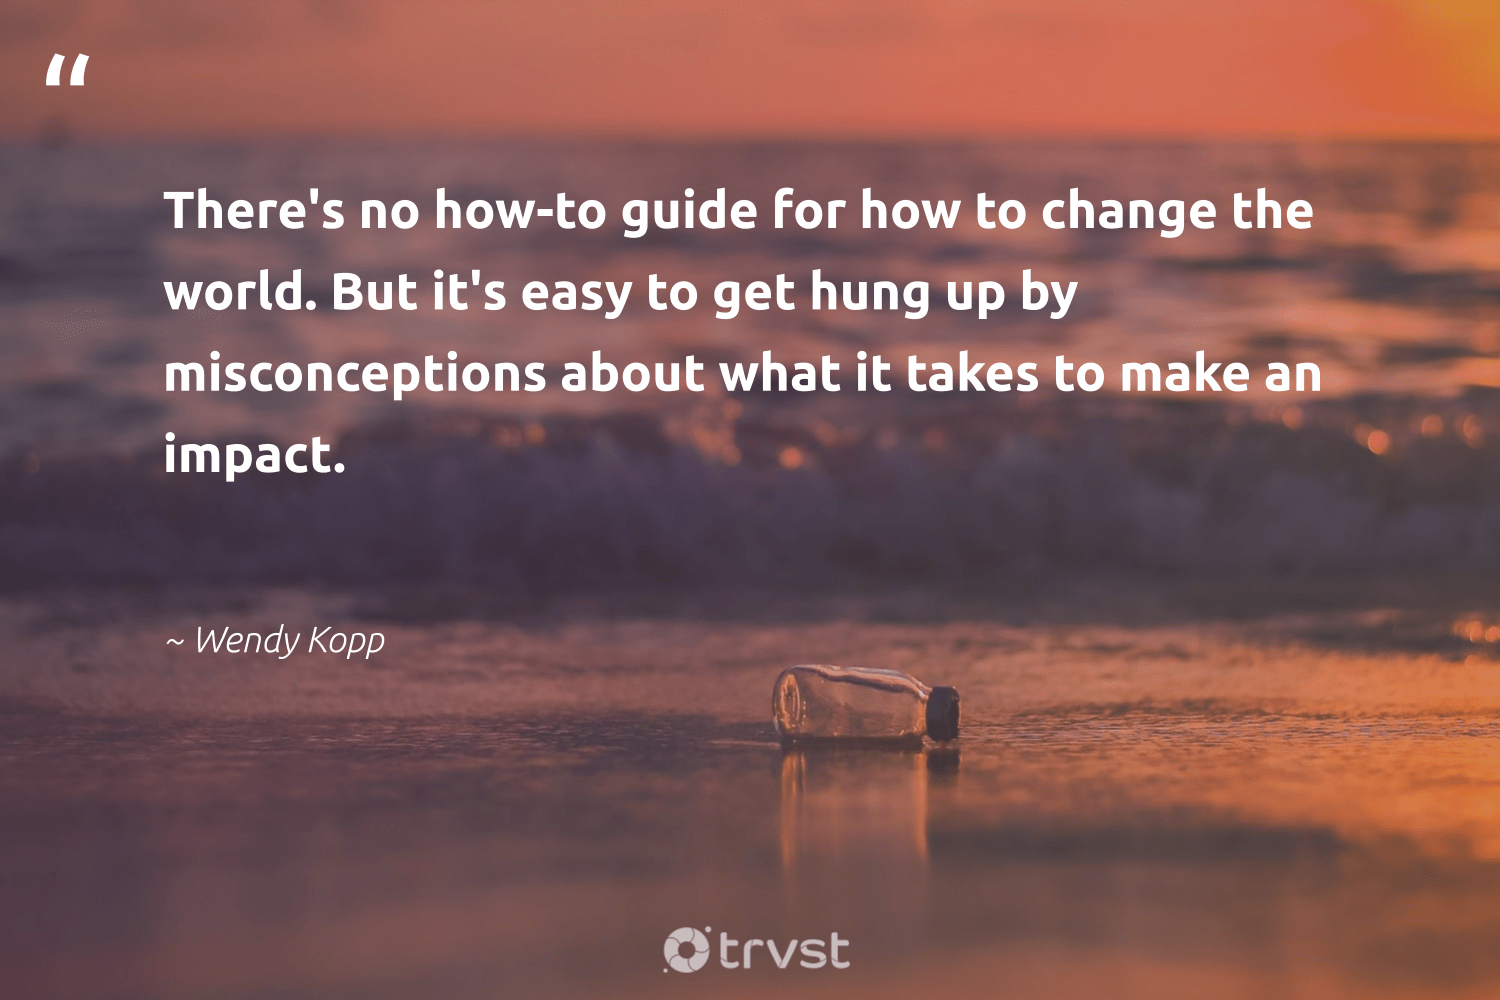 """""""There's no how-to guide for how to change the world. But it's easy to get hung up by misconceptions about what it takes to make an impact.""""  - Wendy Kopp #trvst #quotes #impact #changetheworld #socialchange #dogood #weareallone #socialimpact #ethicalbusiness #beinspired #makeadifference #collectiveaction"""